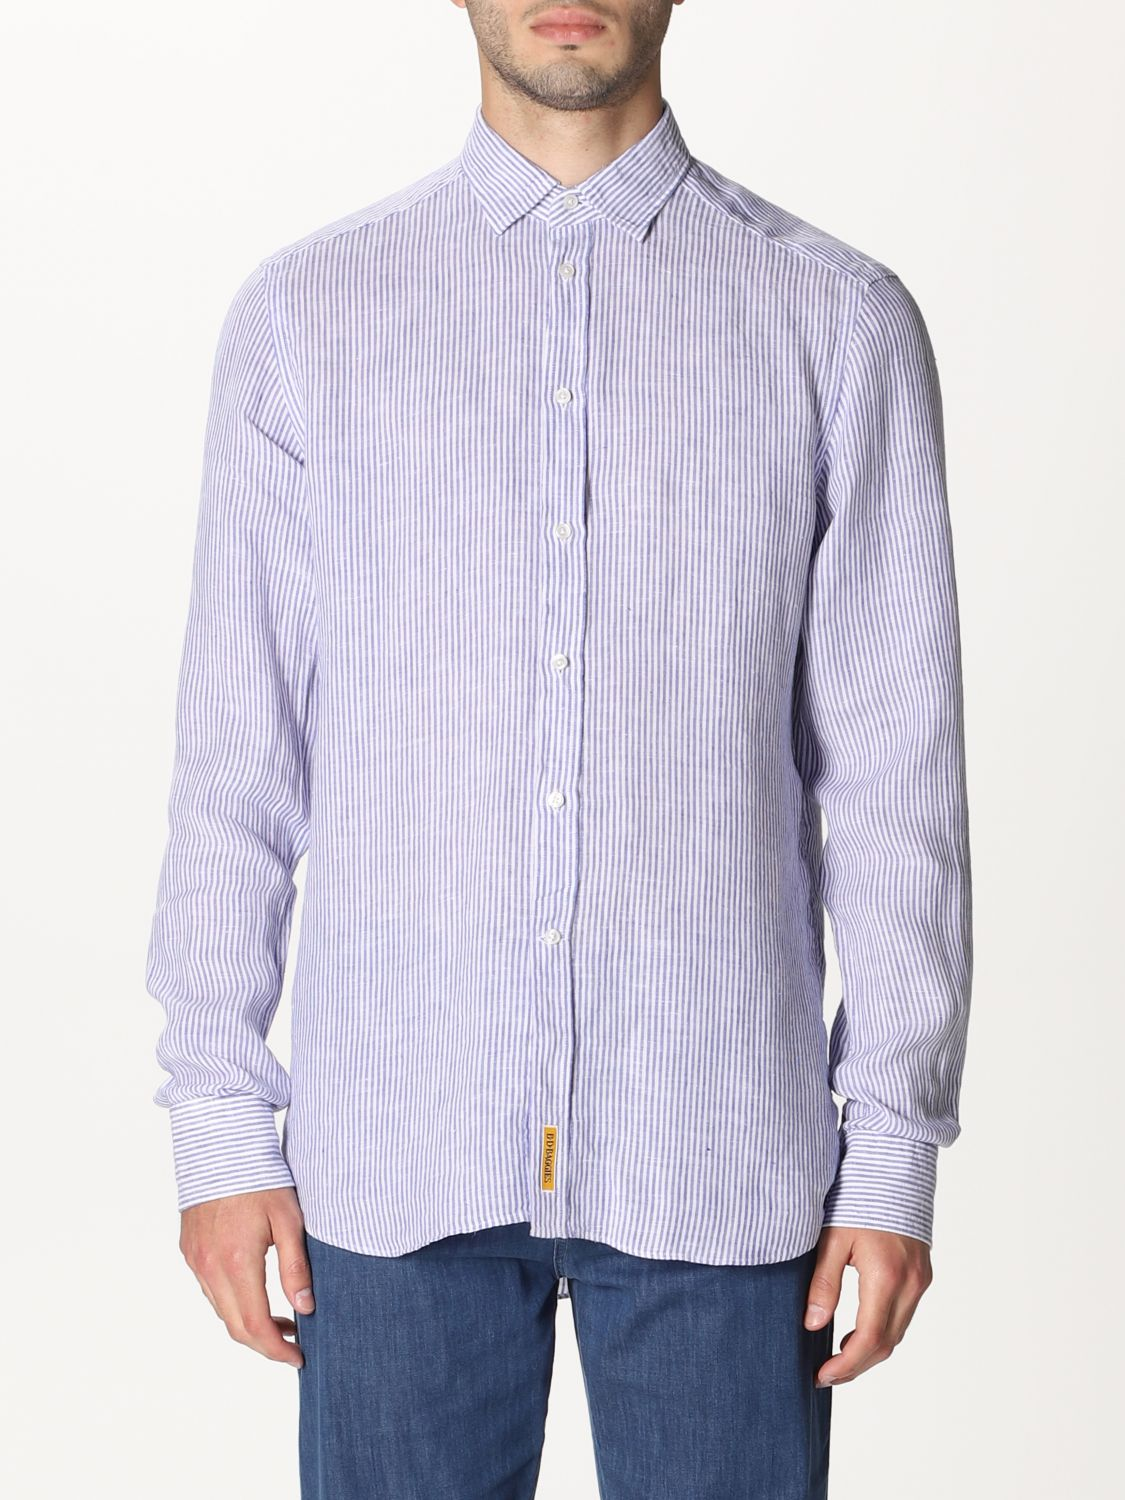 Chemise An American Tradition: Chemise homme Bd Baggies rayé 1